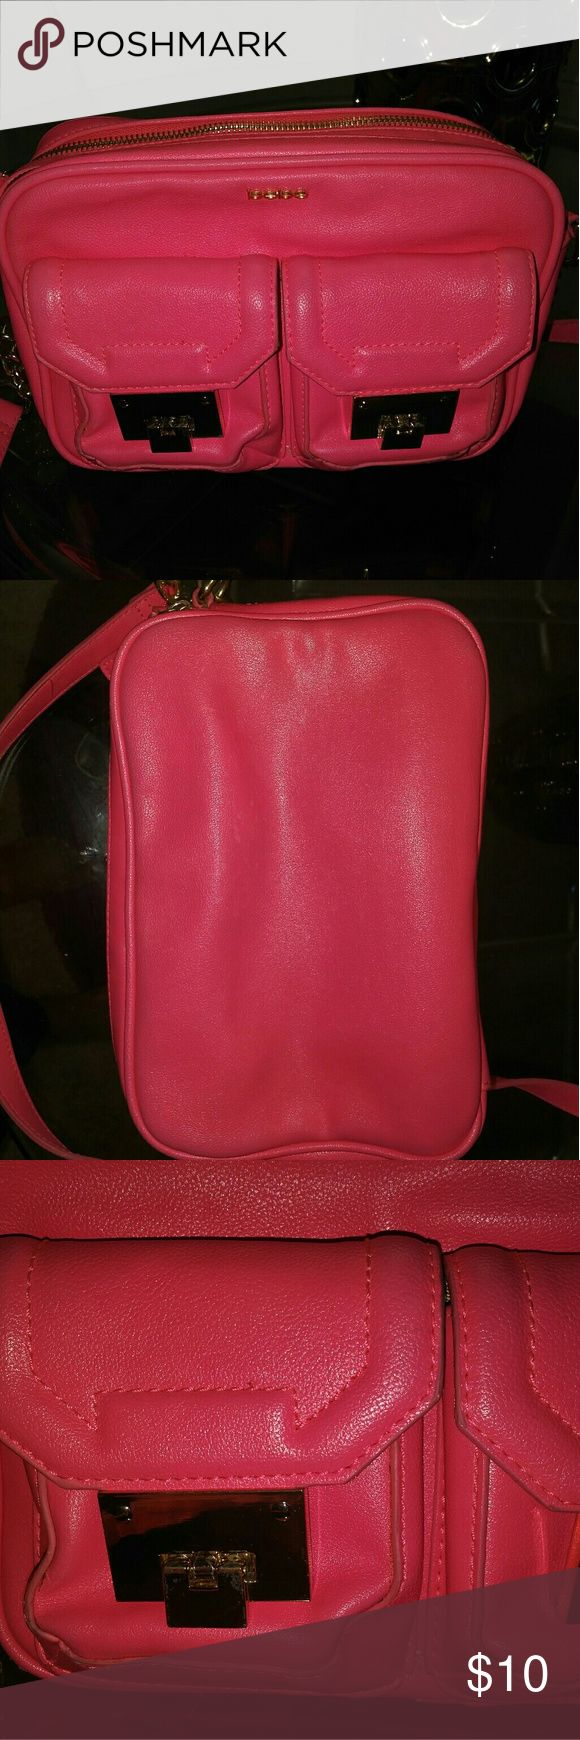 Neon Pink Bebe Satchel Hot pink (neon) . Two front pockets. Two purse openings, with cell phone storage pockets and inside zipper. Detachable pink/gold strap. Gold accent hardware. Top portion (near the opening) has a pen mark on it. A few marks from rubbing against denim jeans; but not noticable. bebe Bags Satchels